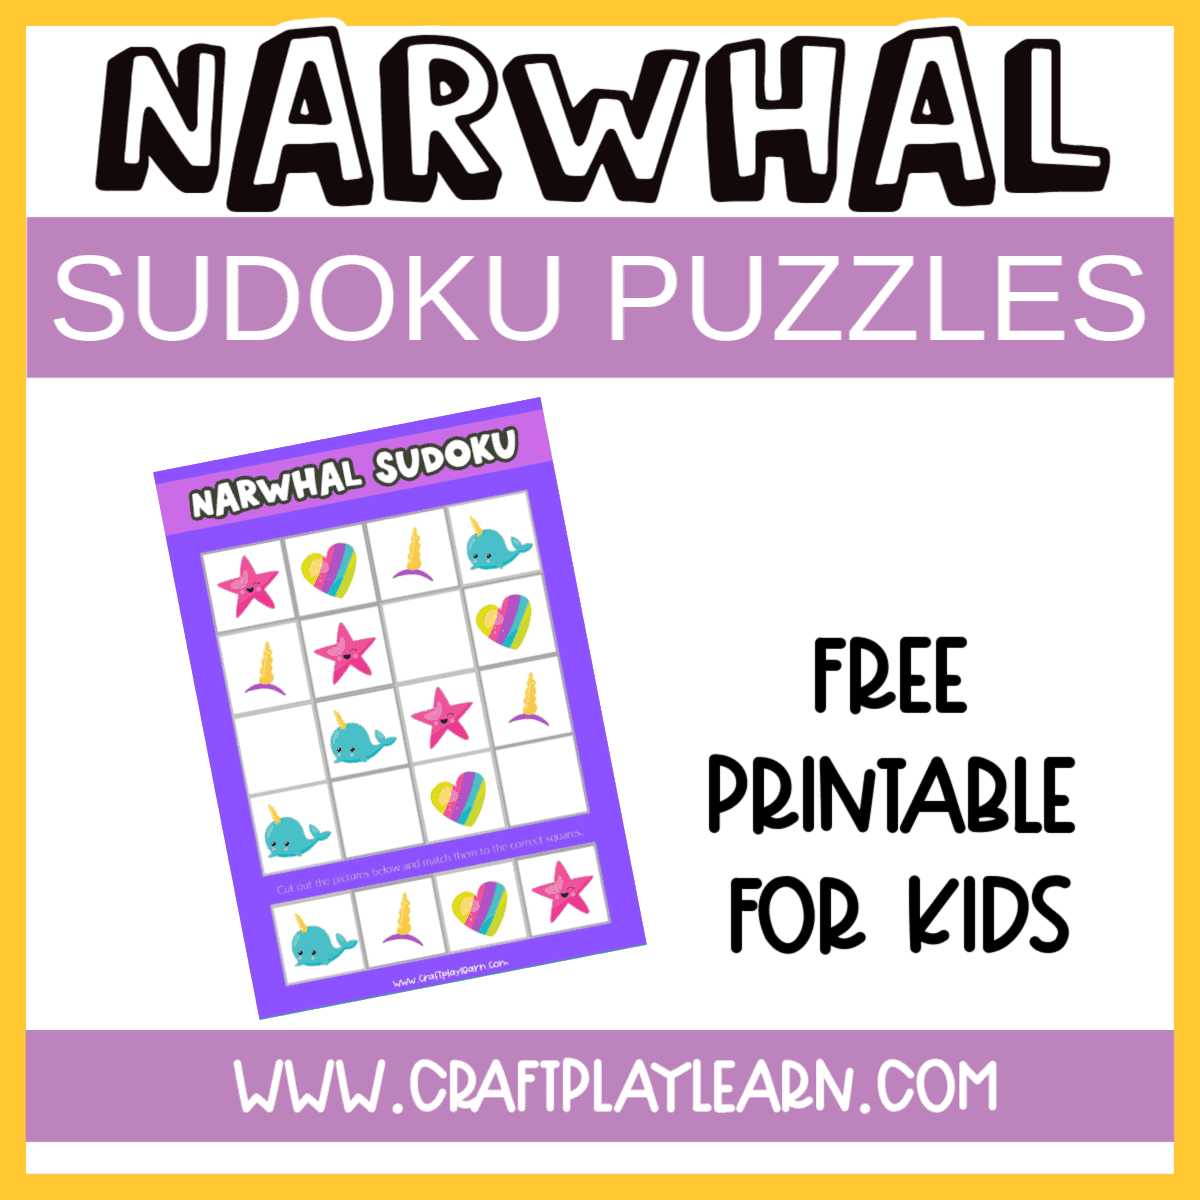 narwhal sudoku puzzles